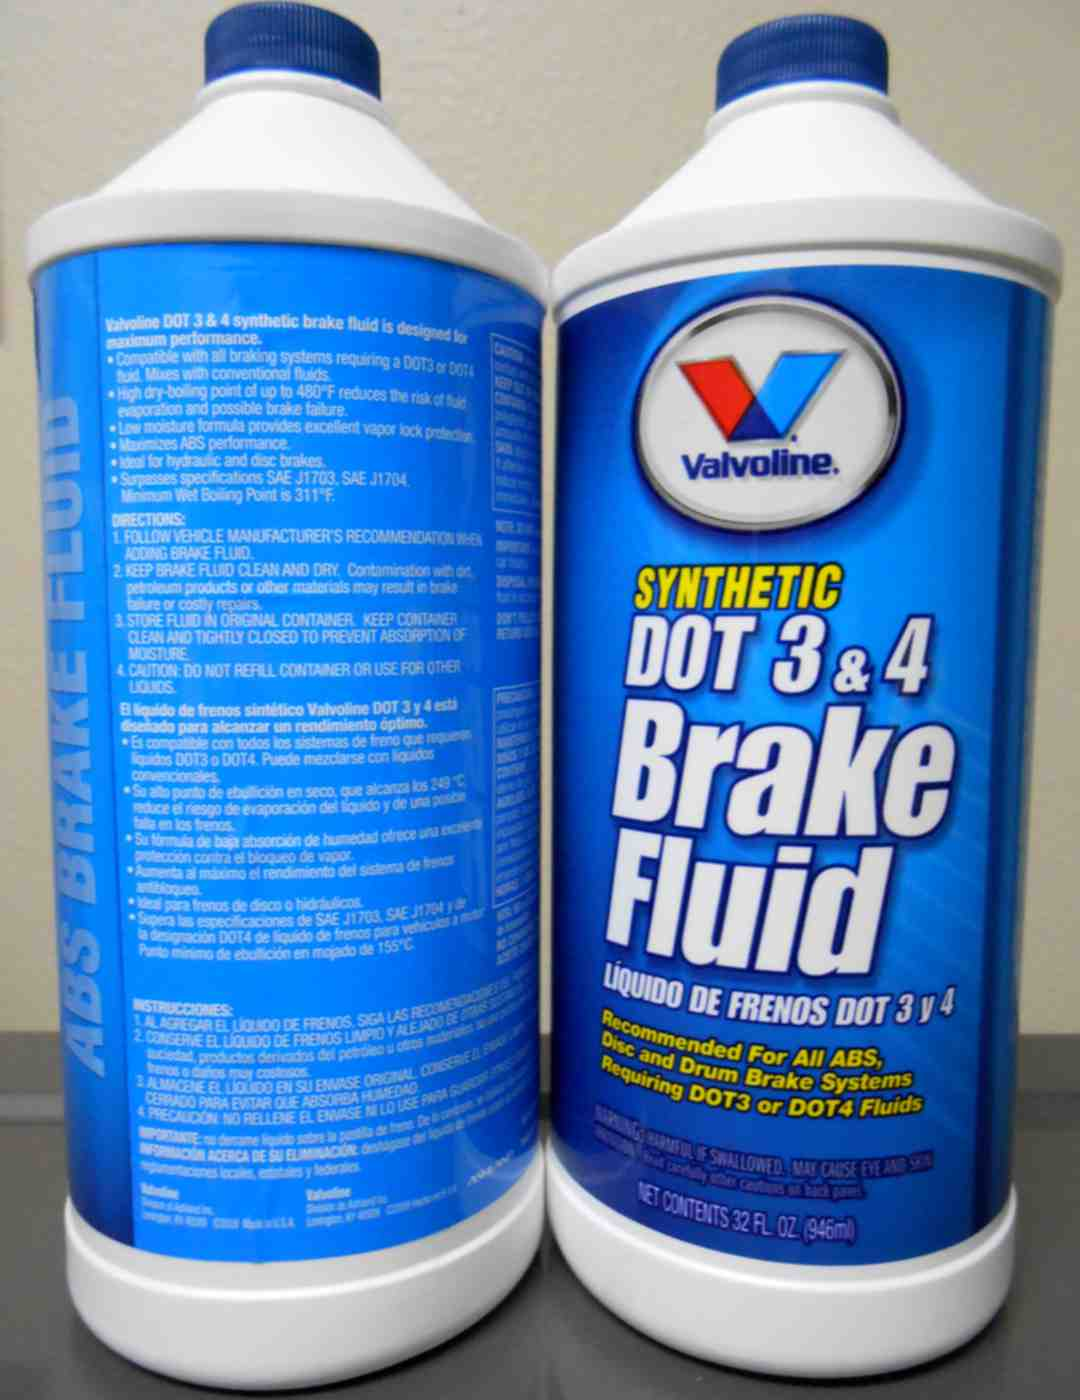 Valvoline DOT3/DOT4 Brake Fluid